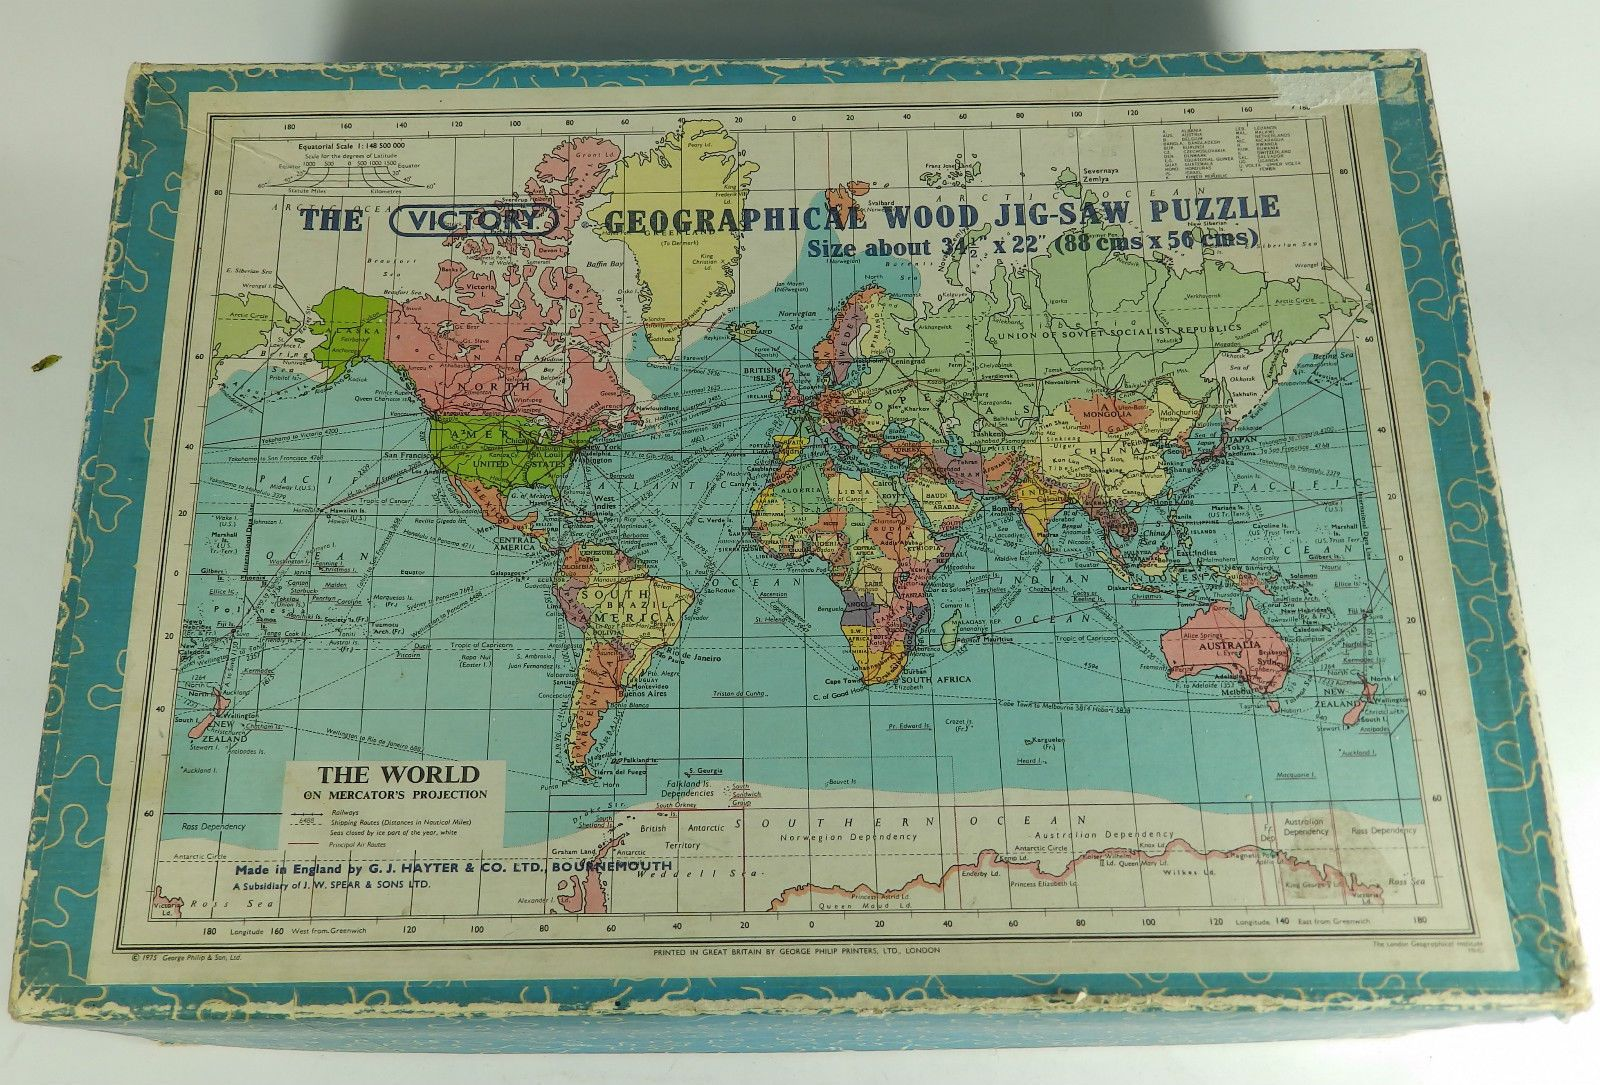 Vintage victory wooden jigsaw puzzle world map complete ebay vintage victory wooden jigsaw puzzle world map complete ebay gumiabroncs Choice Image